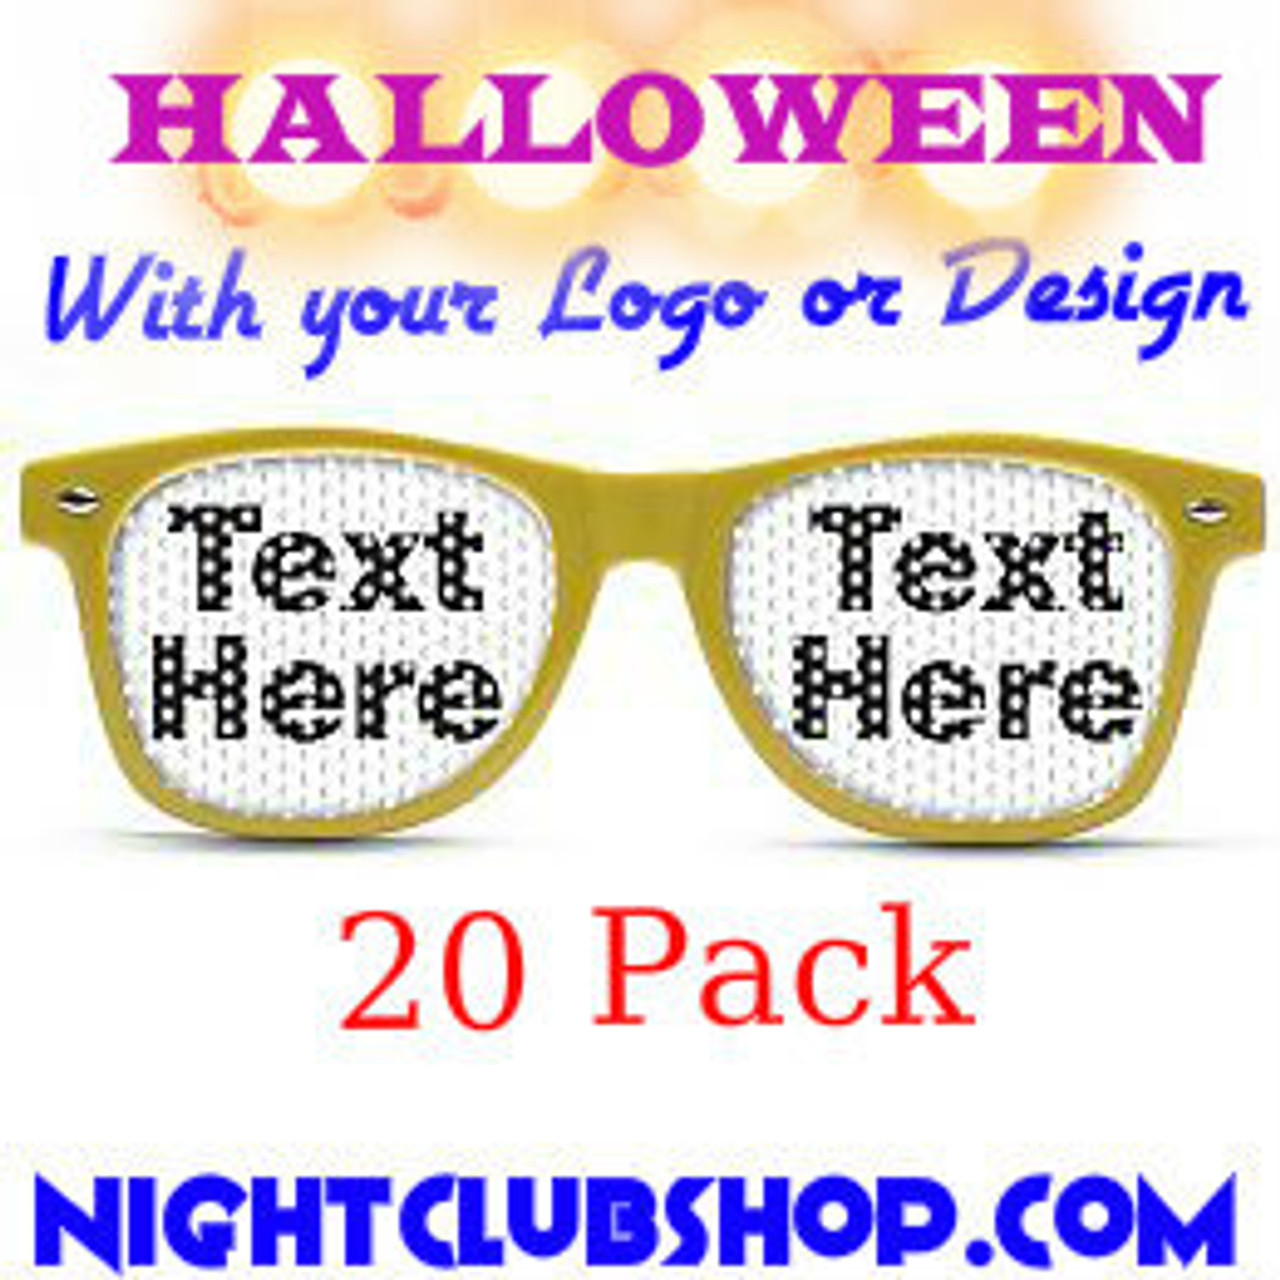 HALLOWEEN PARTY, HALLOWEEN GLASSES, HALLOWEEN SUN GLASSES, HALLOWEEN, SUN GLASSES, SUNGLASSES, CUSTOM, PRINTED, PERSONALIZED, PARTY, NIGHTCLUB, SPECIAL, PRINTED, PROMO SHADES